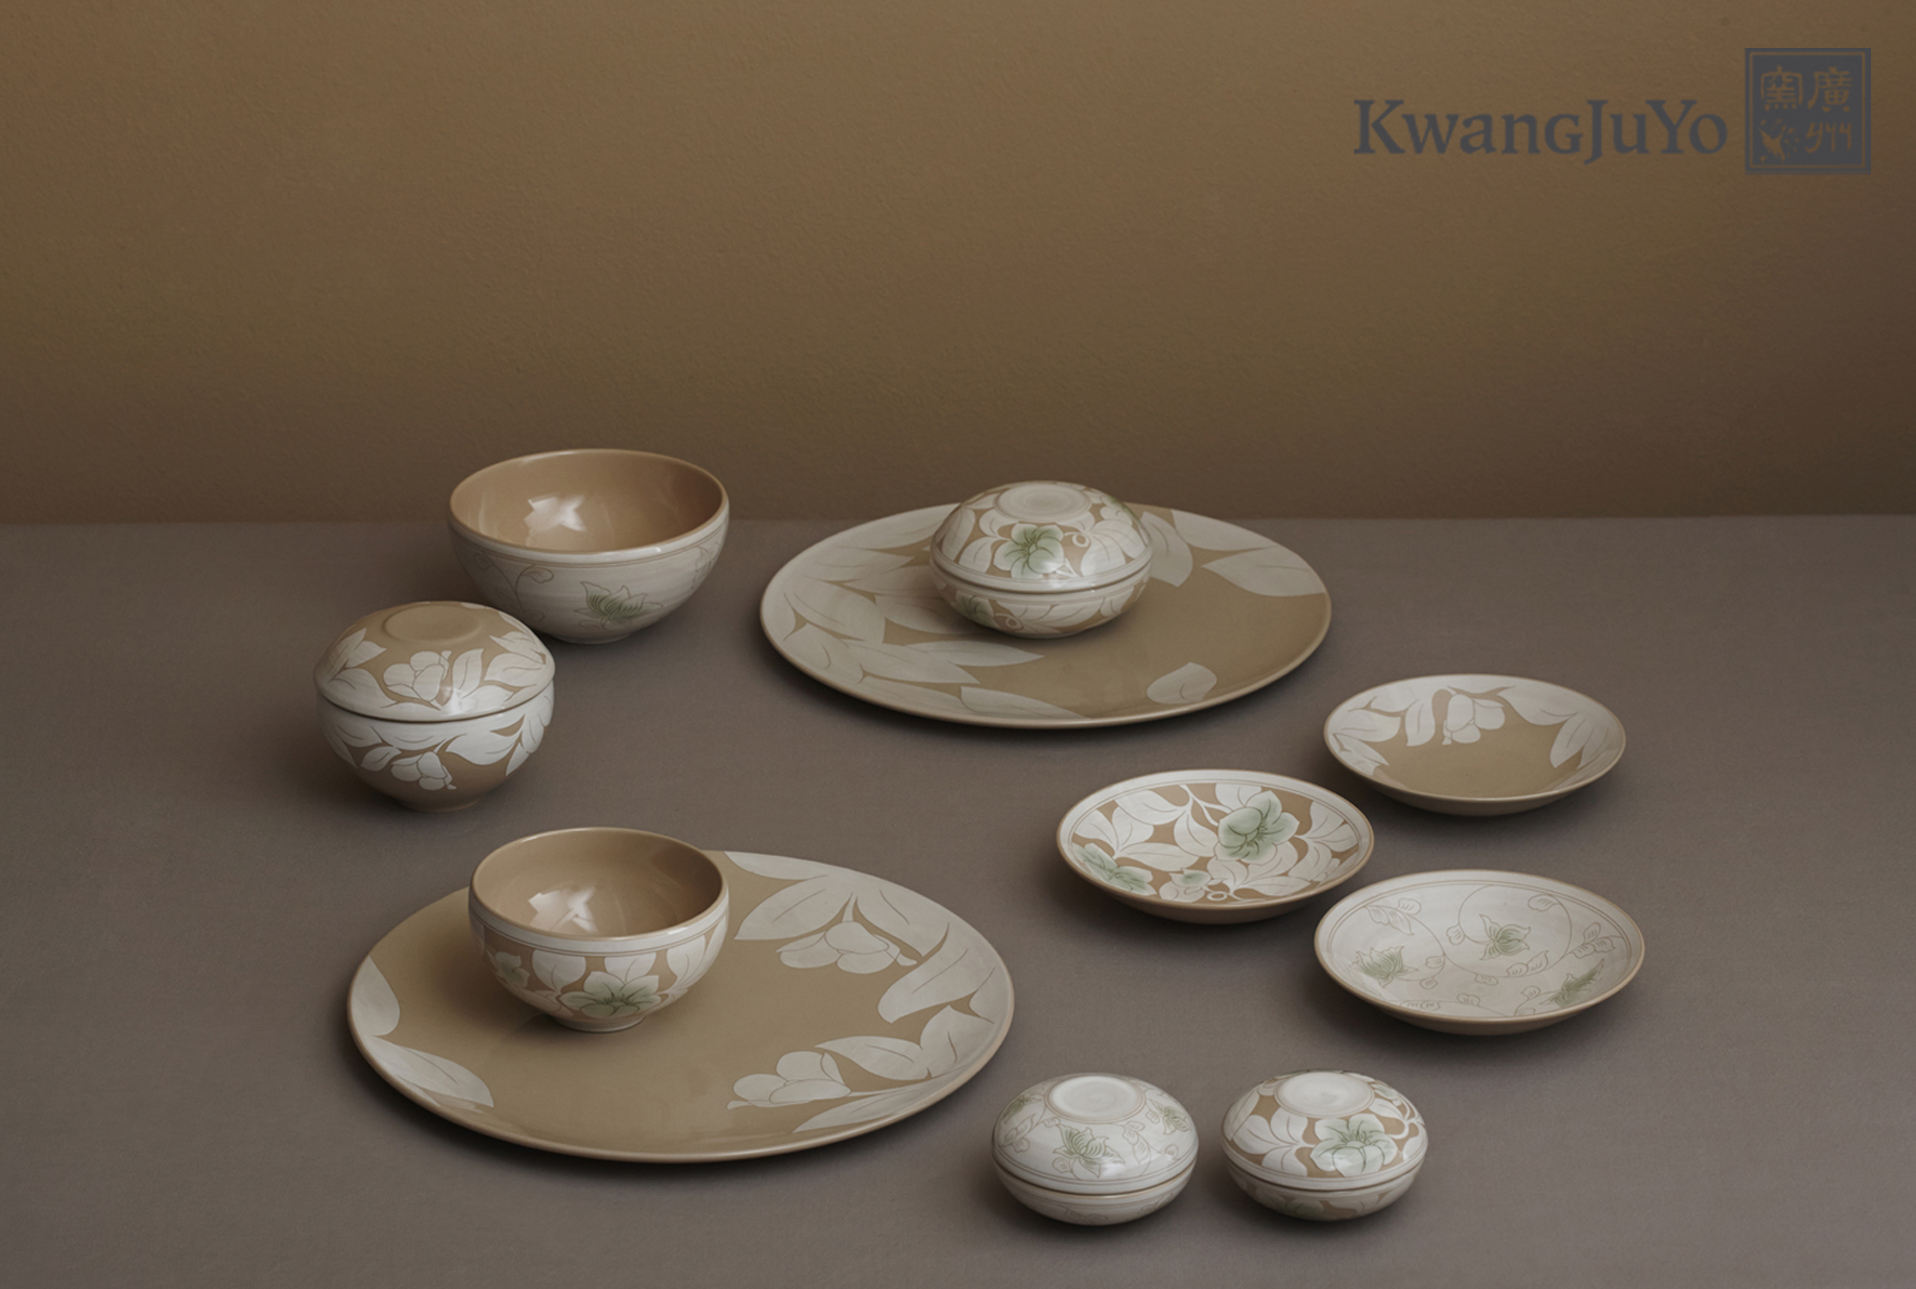 Kwangjuyo Opens A U S Based Online Store To Bring Star Chefs Favorite Ceramic Ware Closer To